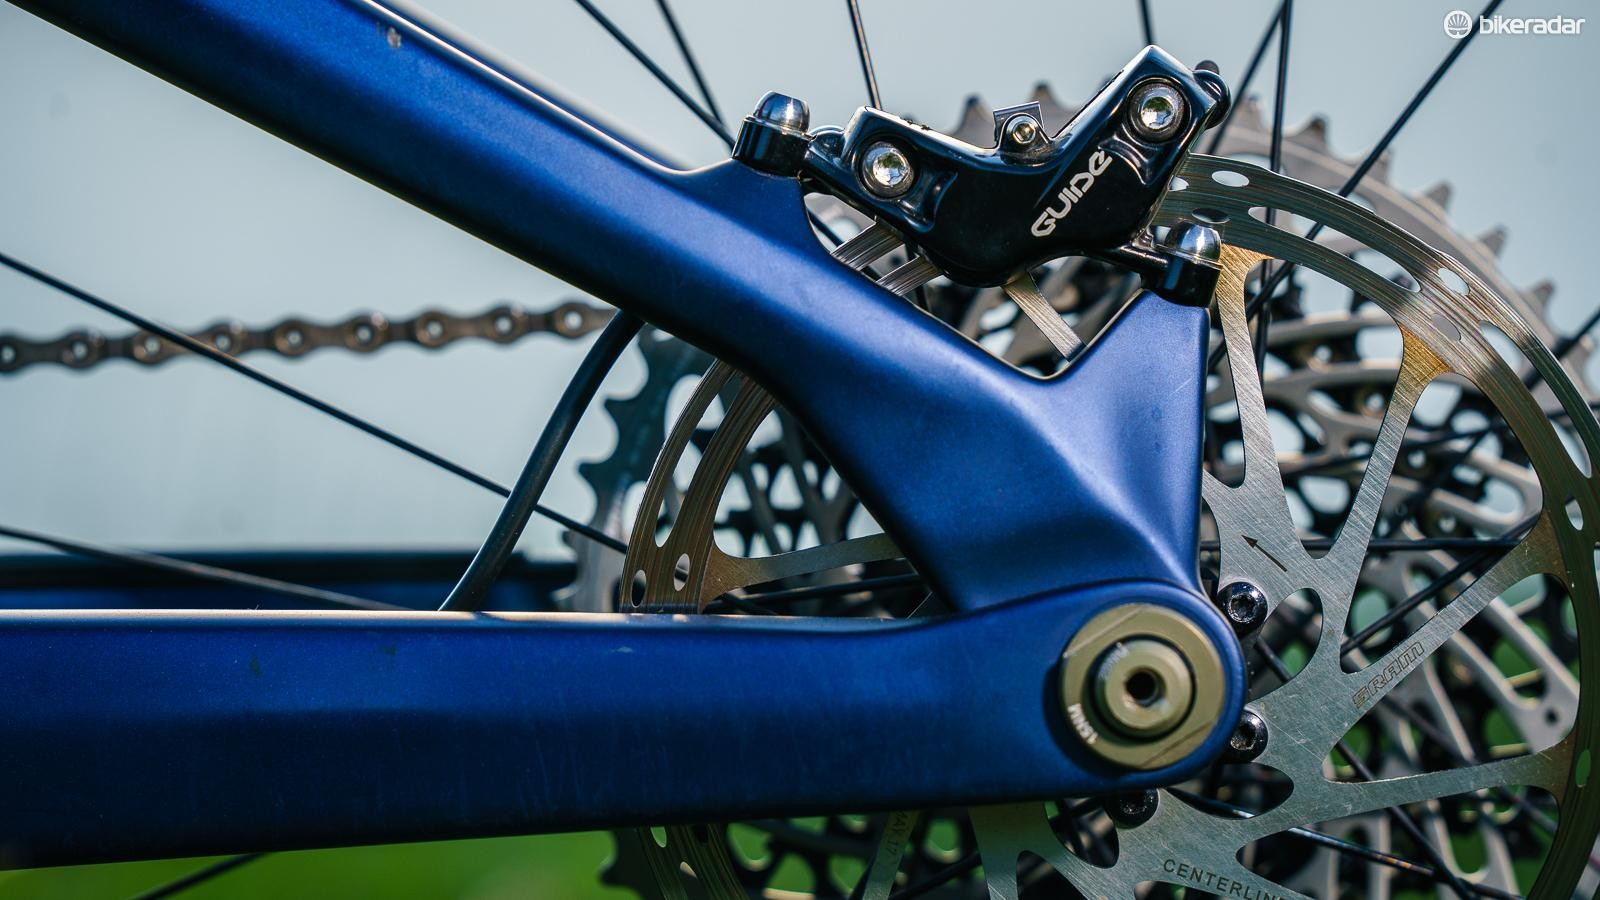 By using the rear axle as a pivot, and integrating a direct brake mount, Orbea has manged to save weight and create a really tidy looking back end